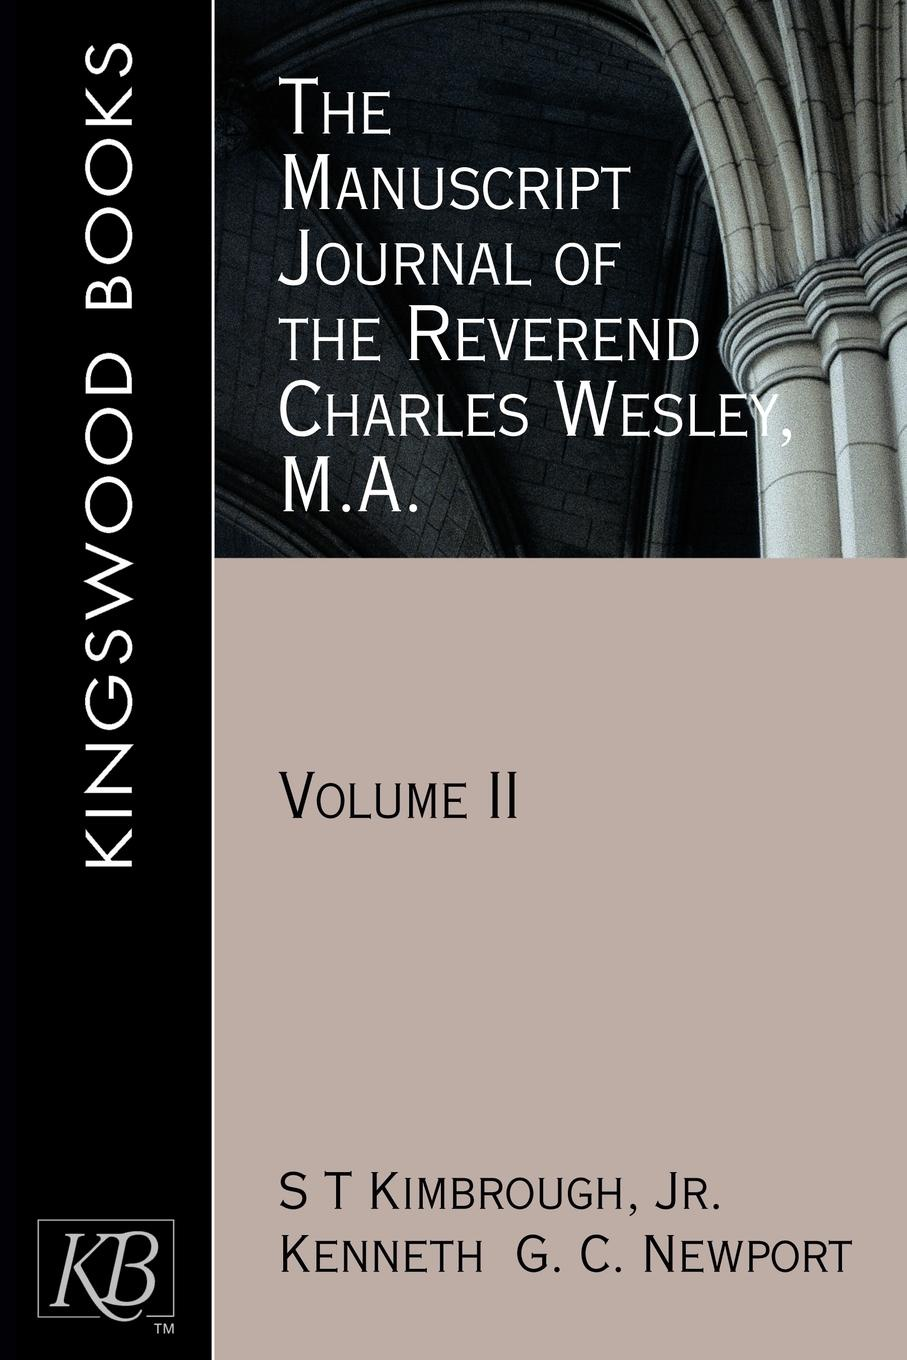 Charles Wesley, S. T. Jr. Kimbrough, Kenneth G. C. Newport The Manuscript Journal of the Reverend Charles Wesley, M.A. Volume 2 love christopher charles scriptural latin plays of the renaissance and milton s cambridge manuscript